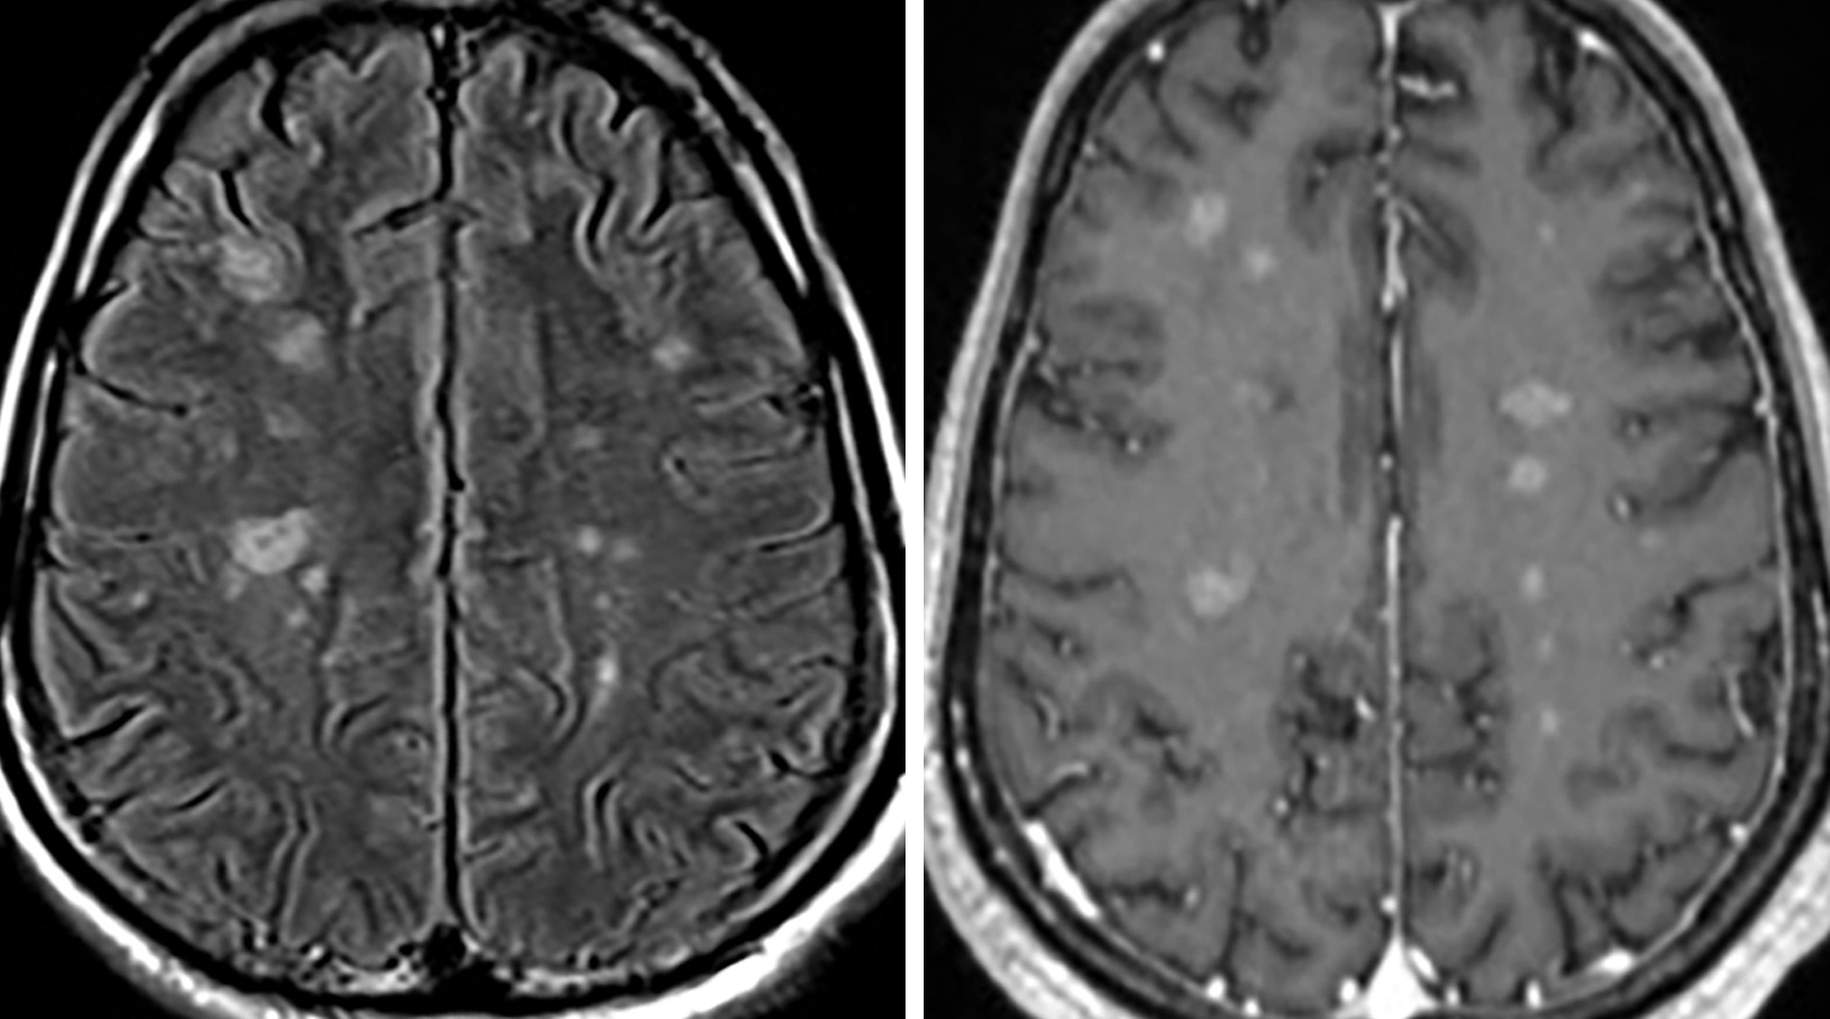 Figure 1: In this case, there are multiple scattered foci of FLAIR hyperintense signal (left) with corresponding enhancement (right) in the cerebral parenchyma. More commonly, you will see superficial pachymeningeal or leptomeningeal enhancement with enhancement and thickening of the pituitary gland, infundibulum or cranial nerves.